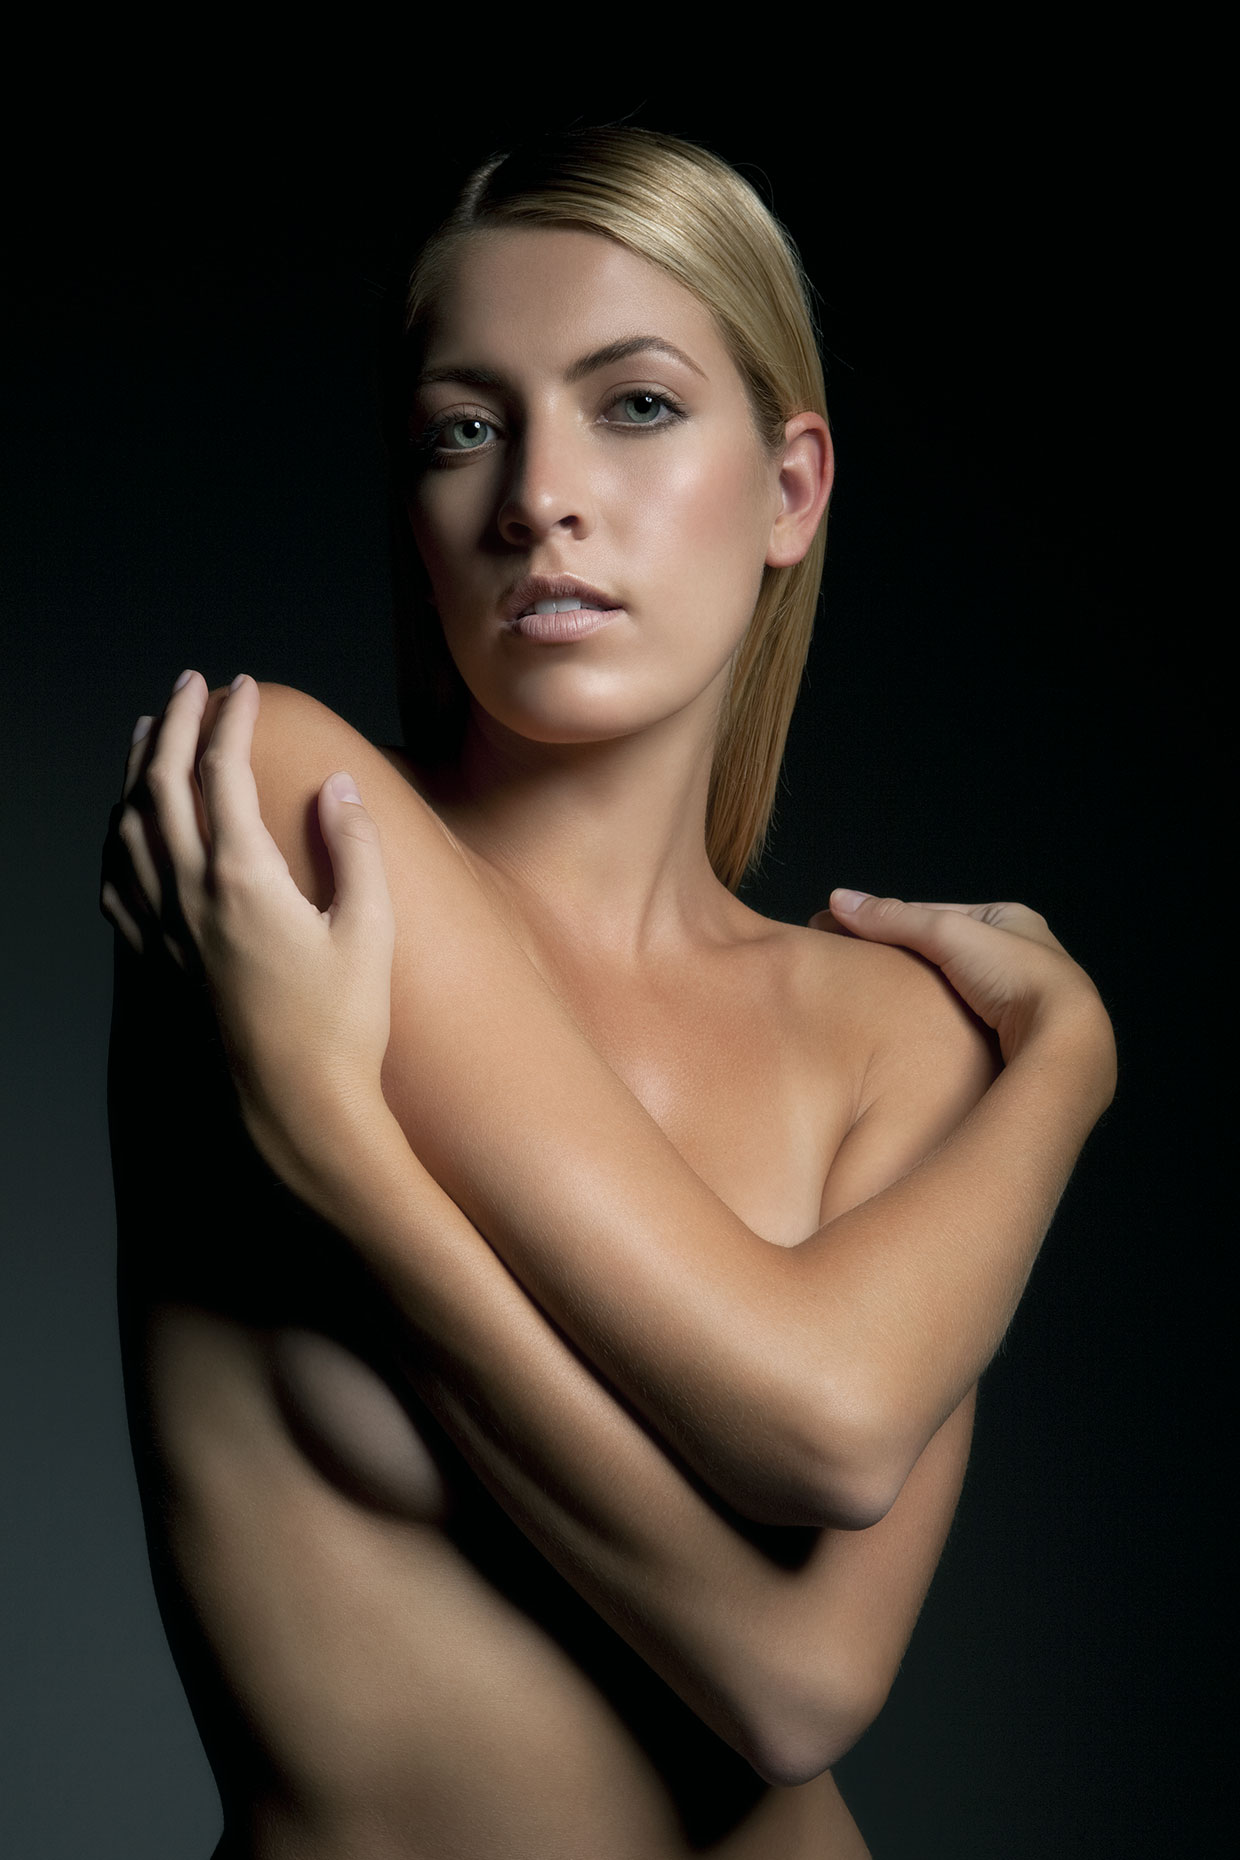 Naked young woman crossing her arms, portrait.